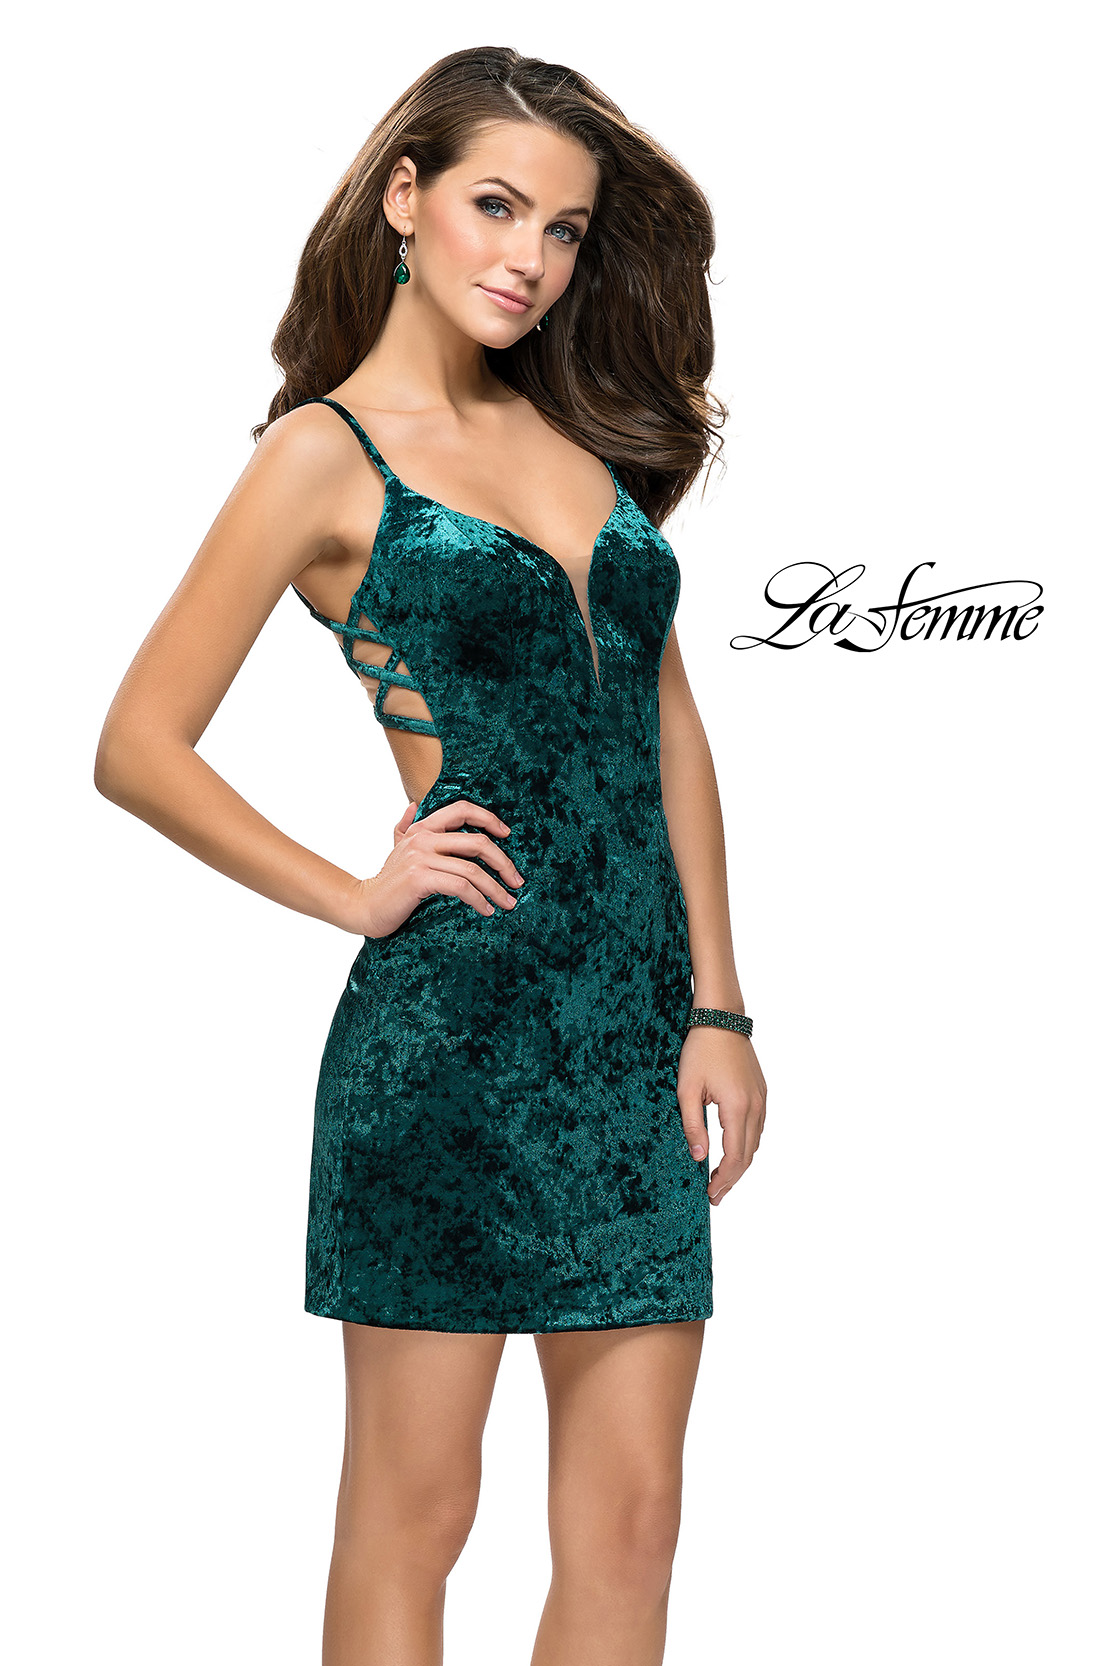 Green Homecoming Dress by La Femme with Velvet and Rhinestones